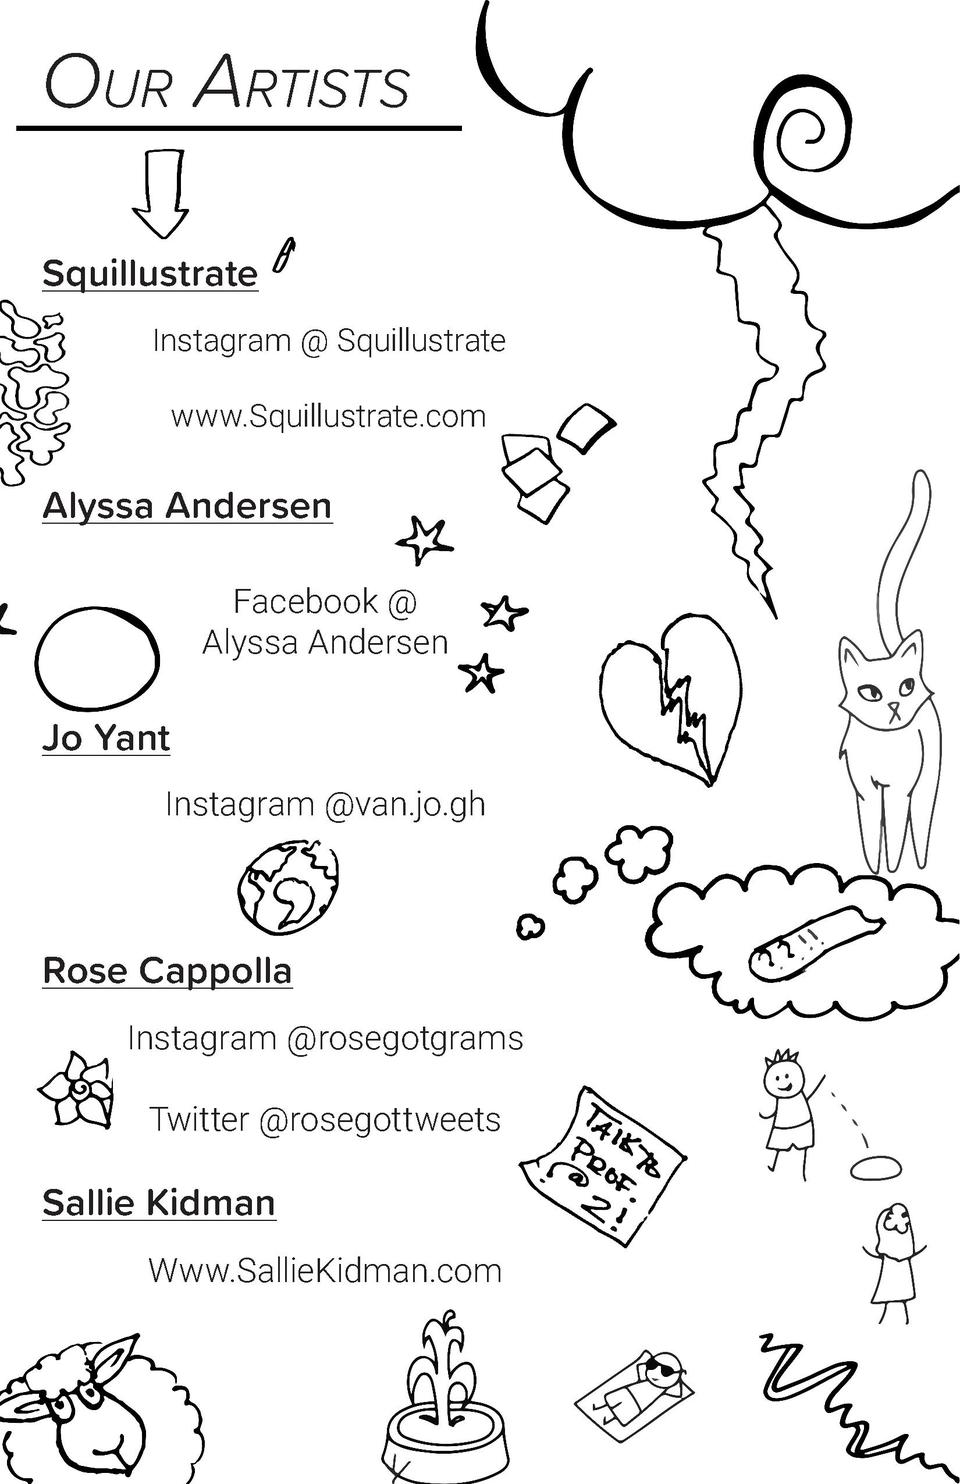 Our Artists Squillustrate Instagram   Squillustrate www.Squillustrate.com  Alyssa Andersen Facebook   Alyssa Andersen  Jo ...